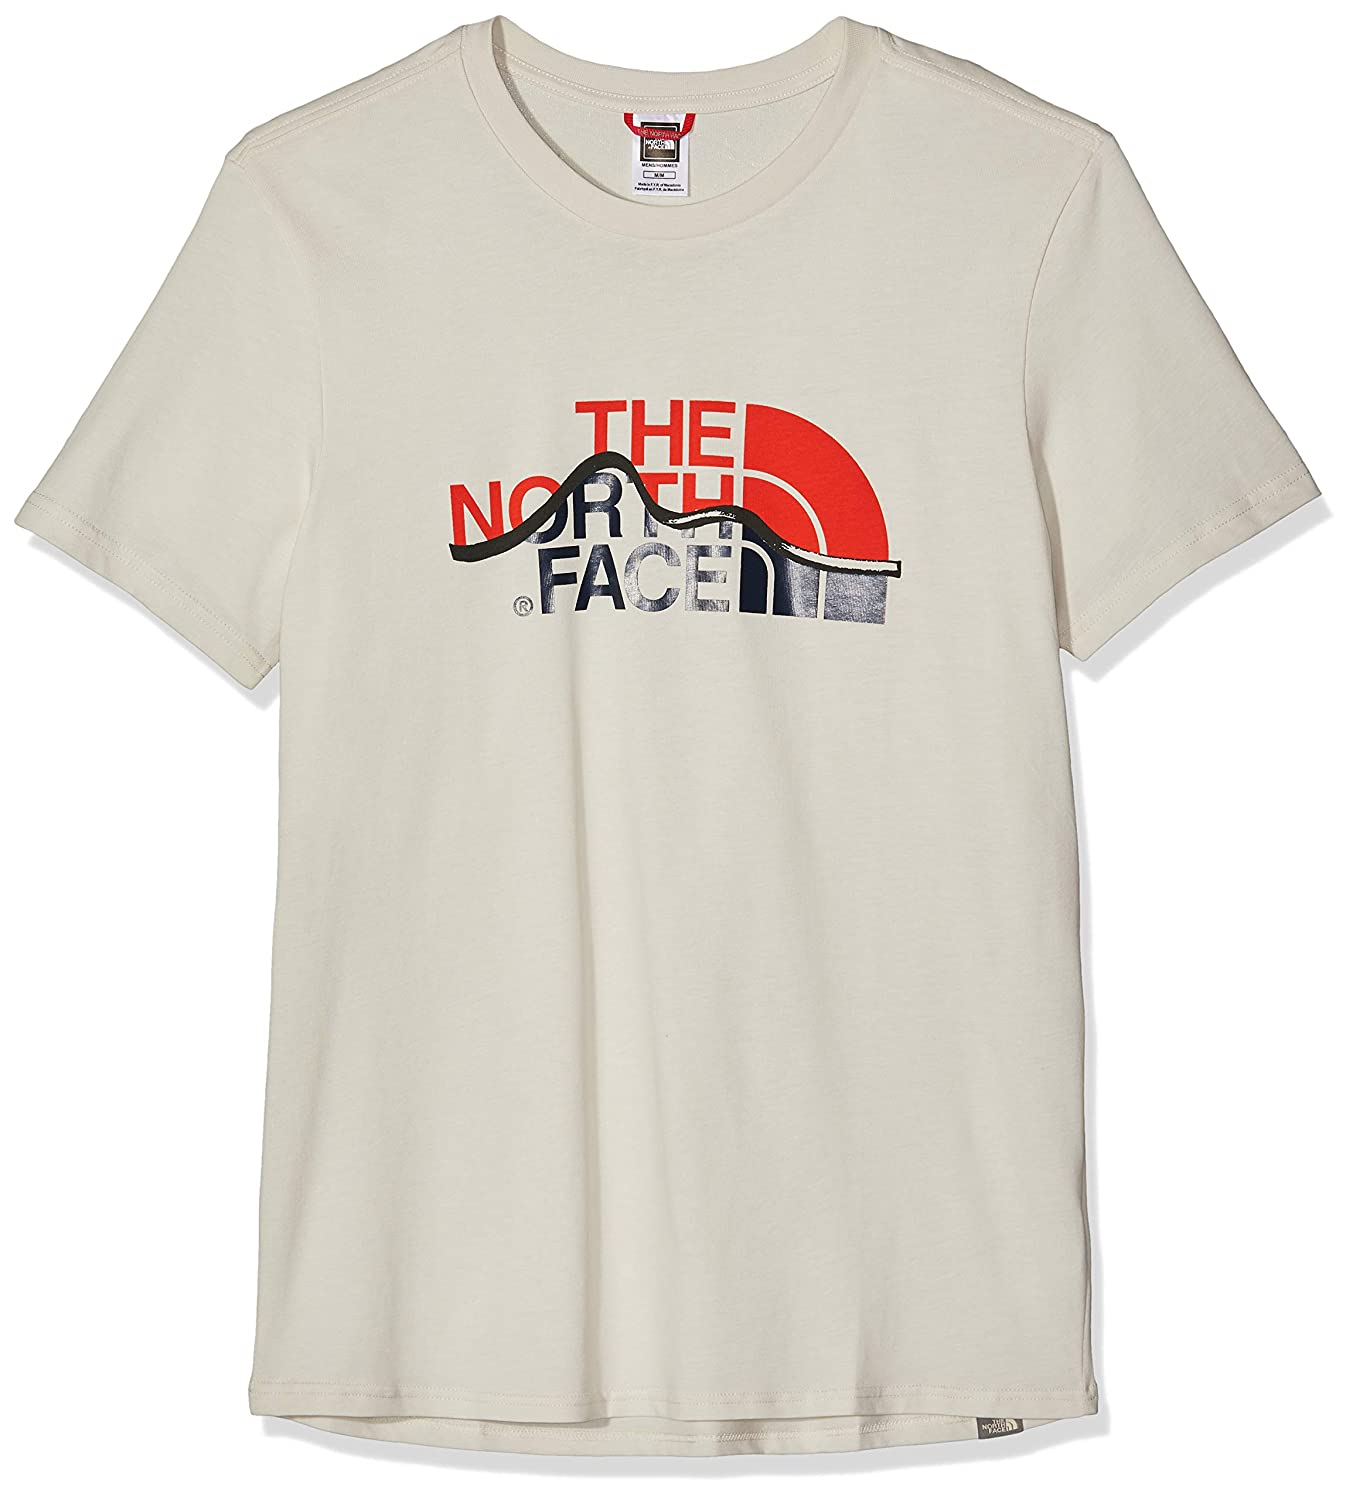 622d1ab16 The North Face Mountain Line Men's Outdoor T-Shirt